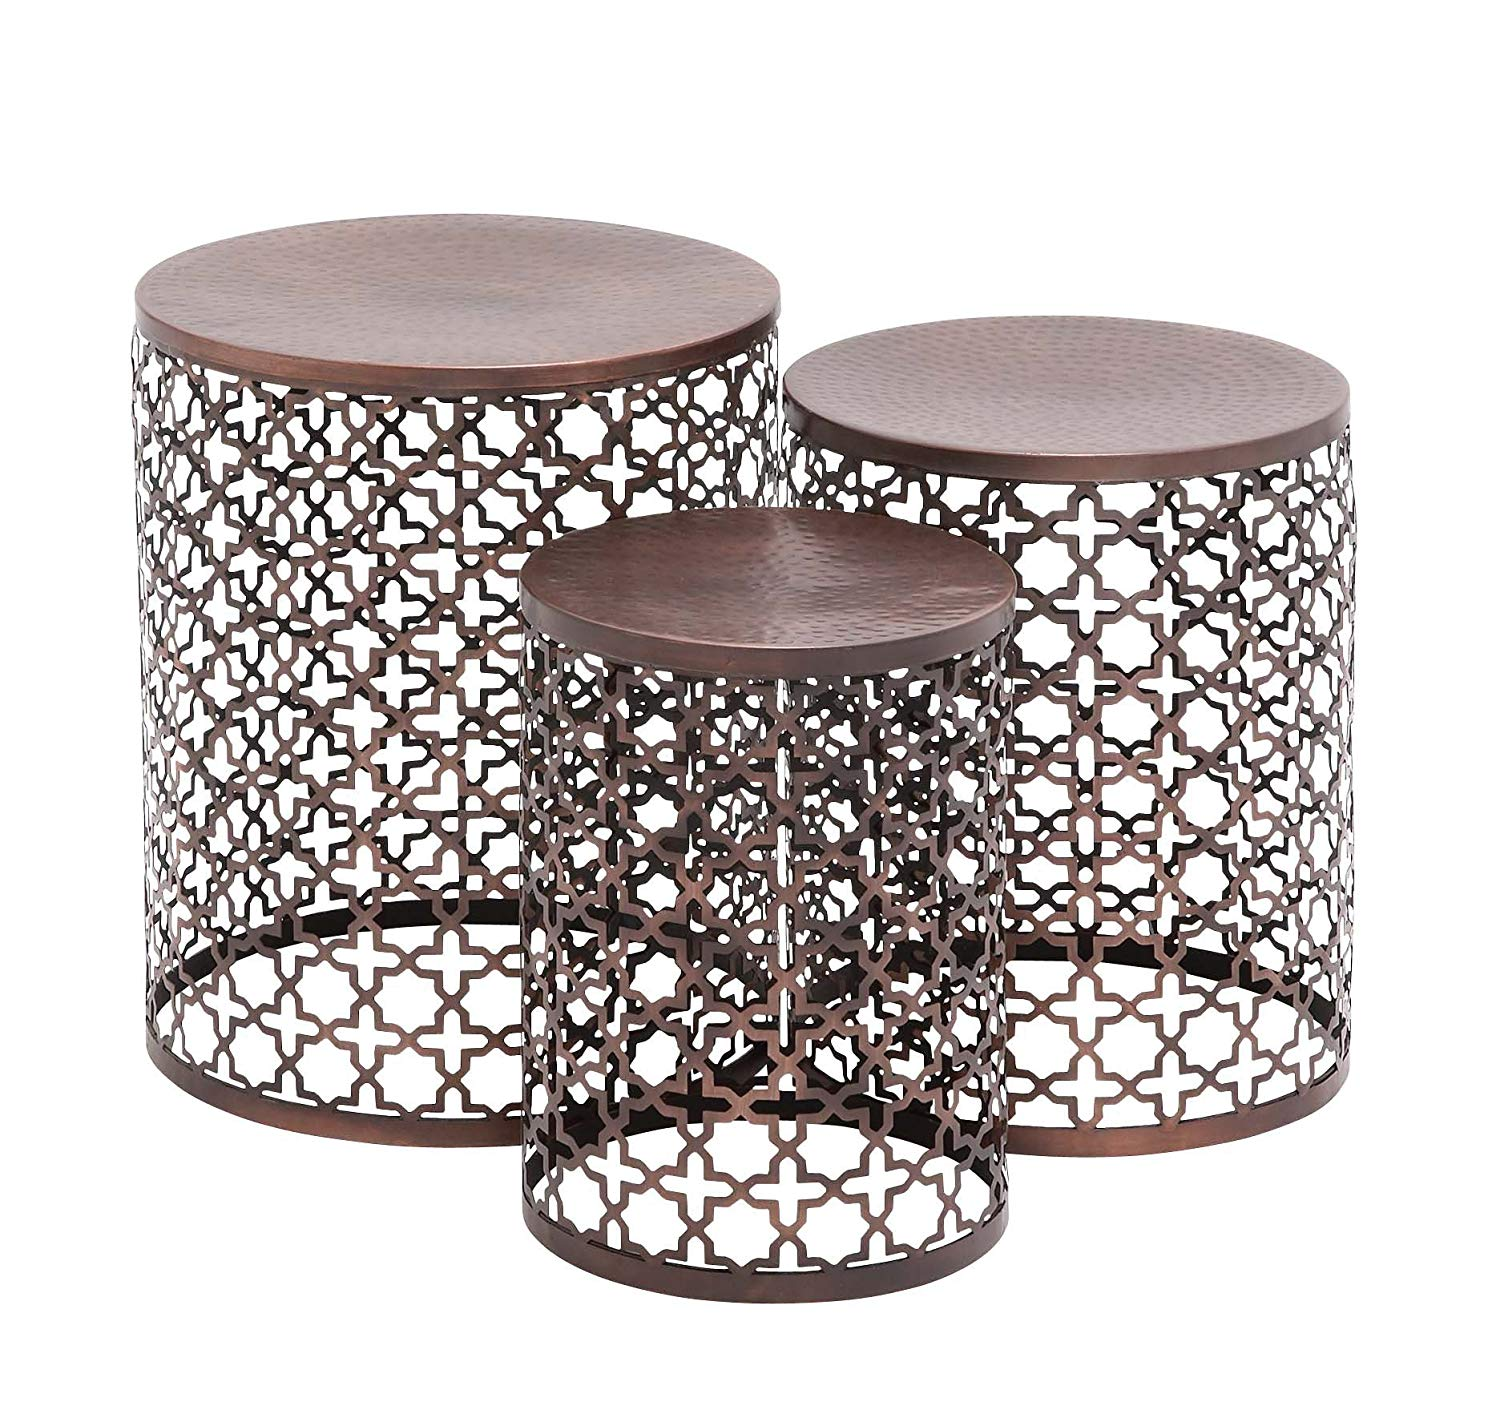 benzara the floral metal accent table set kitchen dining fretwork outdoor stone side commercial nic tables tablecloth pier one chair covers sofa and end marble utensil holder